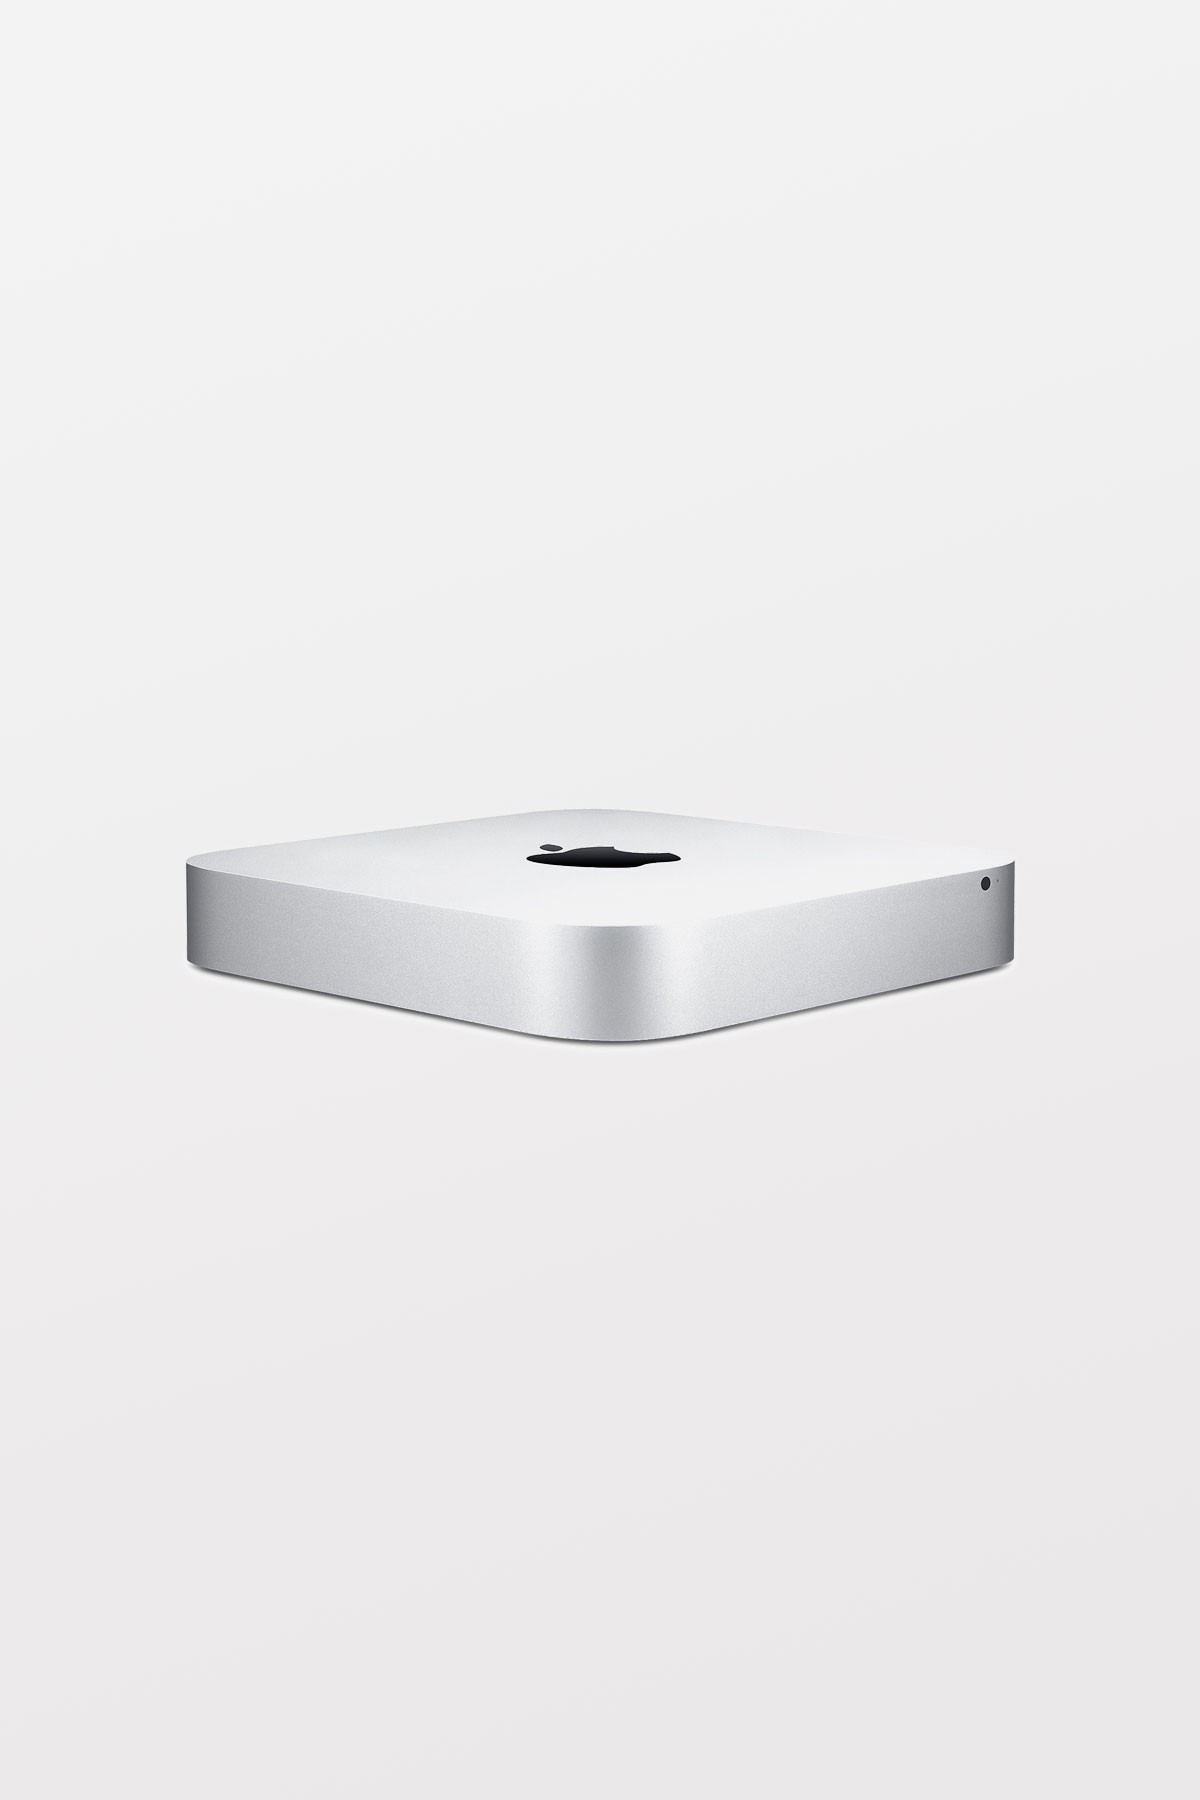 Apple Mac Mini: 2.6GHz Dual-Core Intel Core i5 (Turbo Boost up to 3.1GHz) / 8GB 1600MHz Memory / 1TB HDD